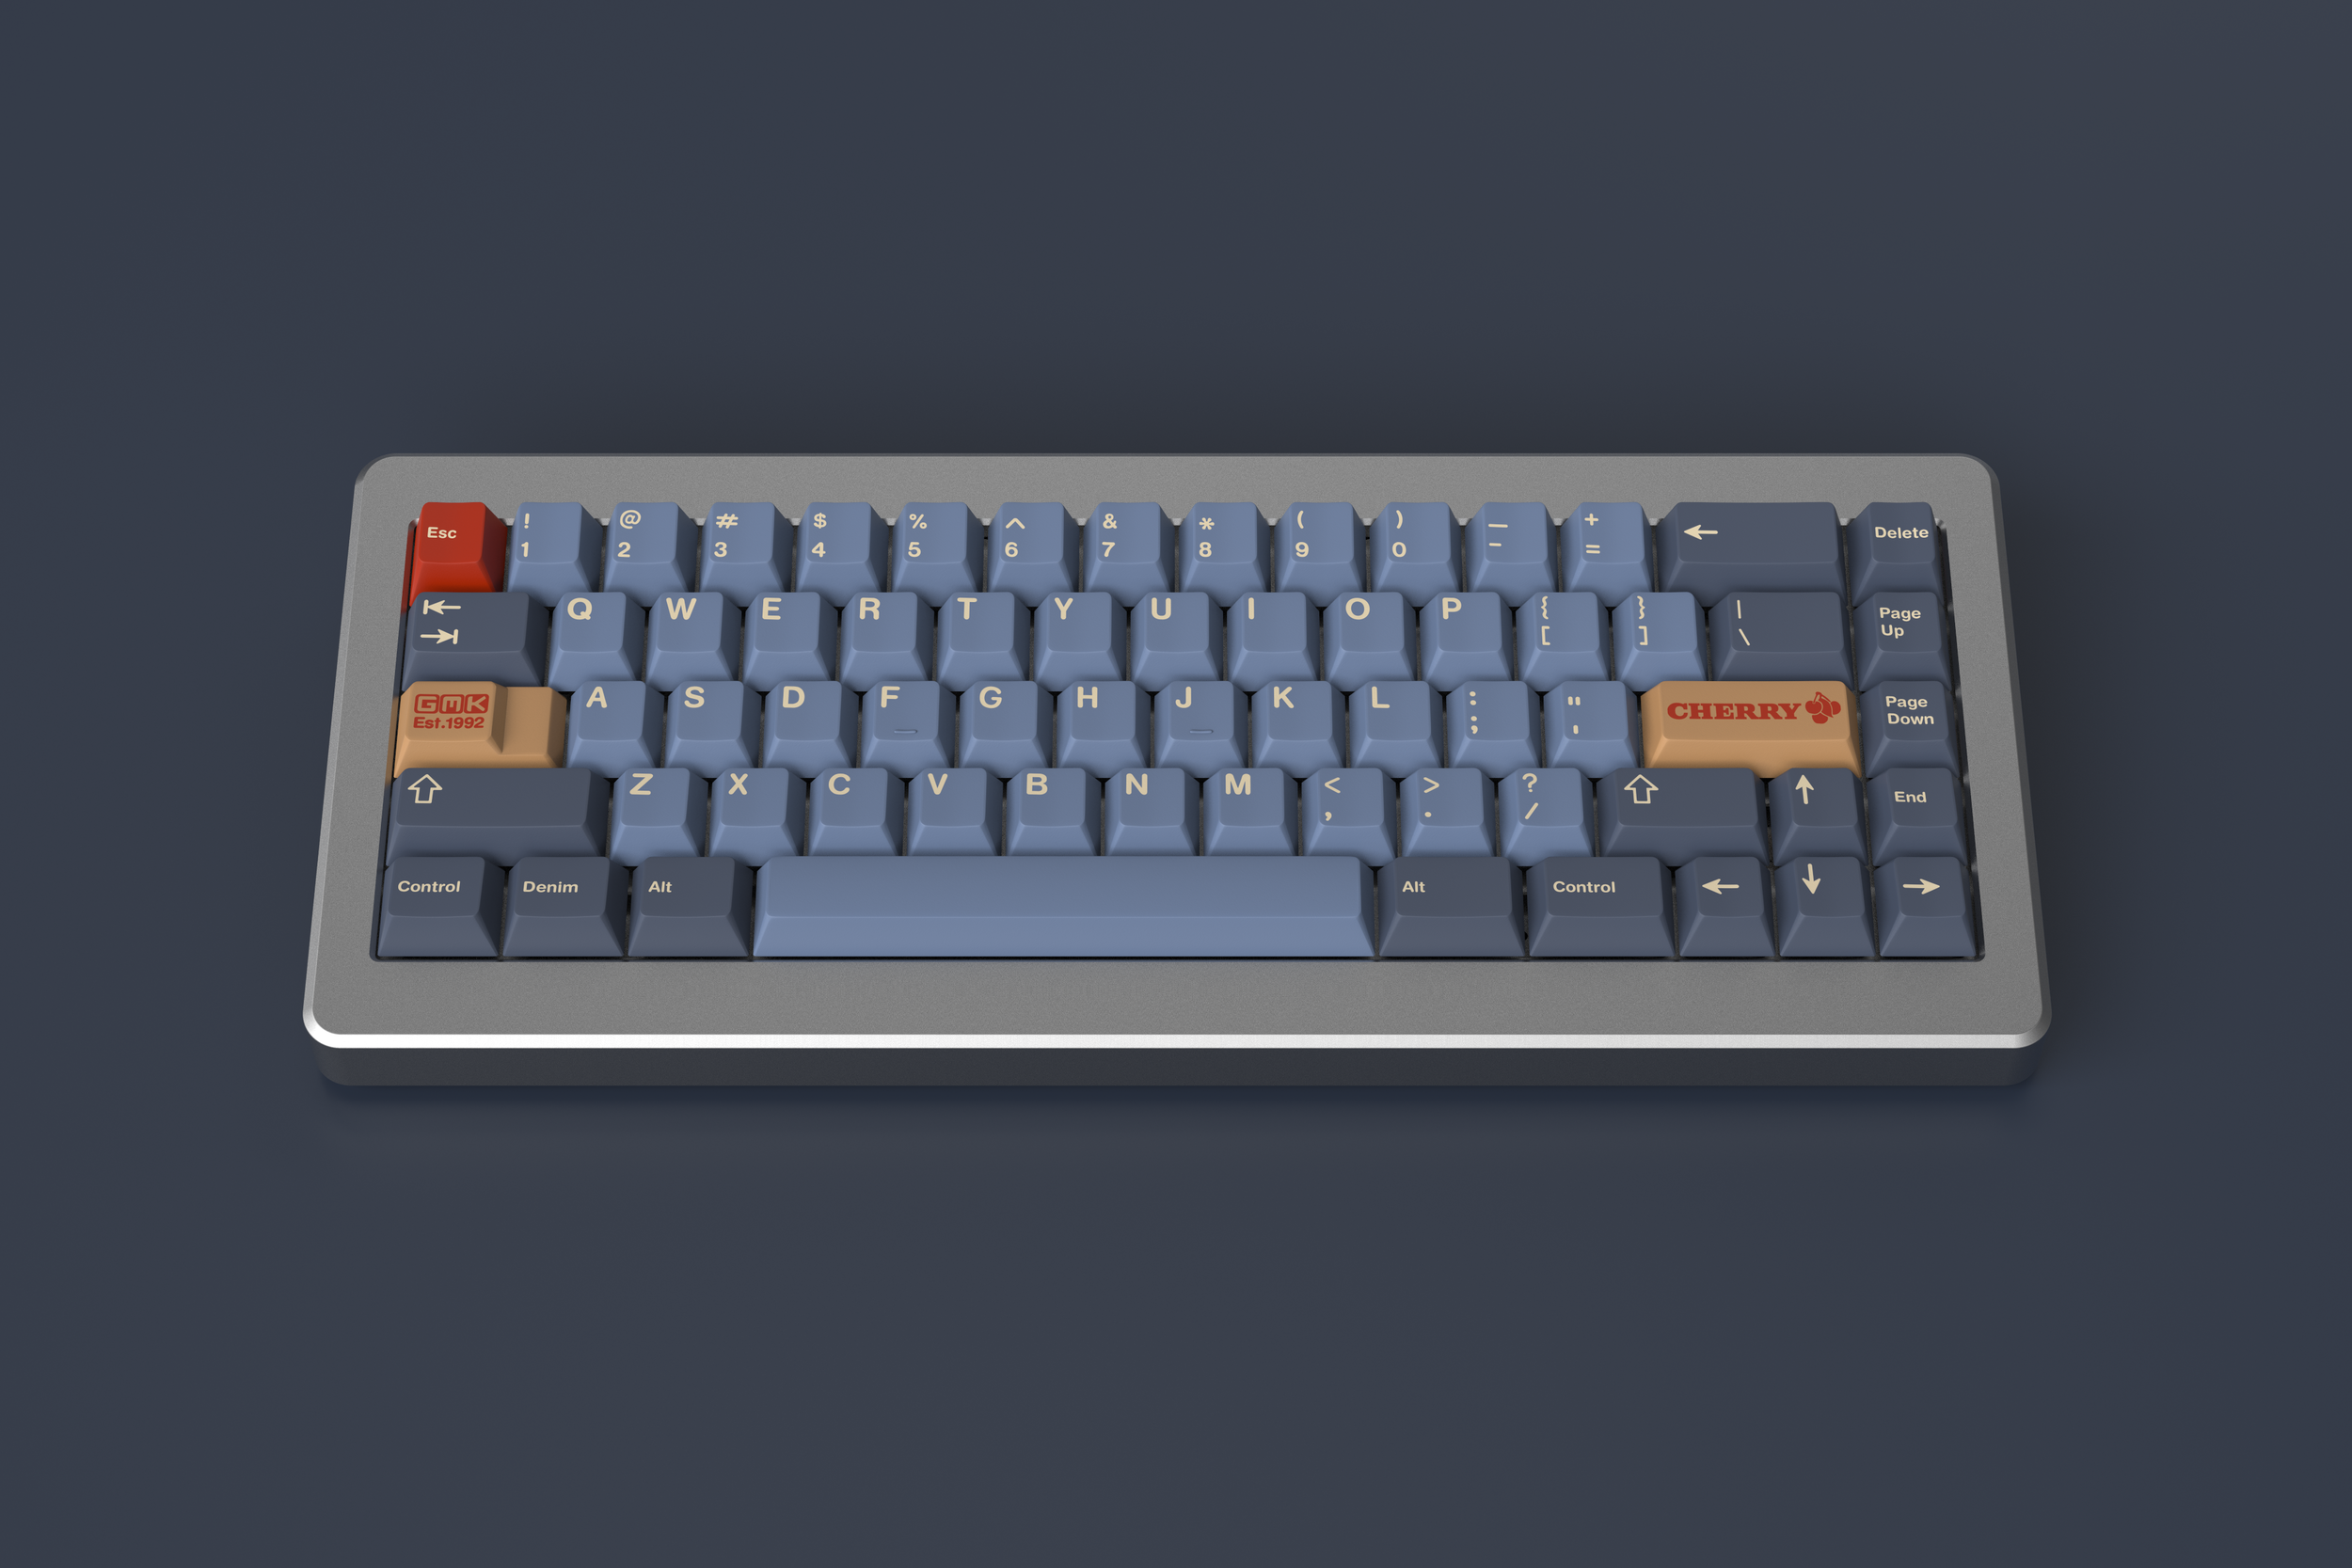 gmk_denim_keyboard_m65a_persp_front.png